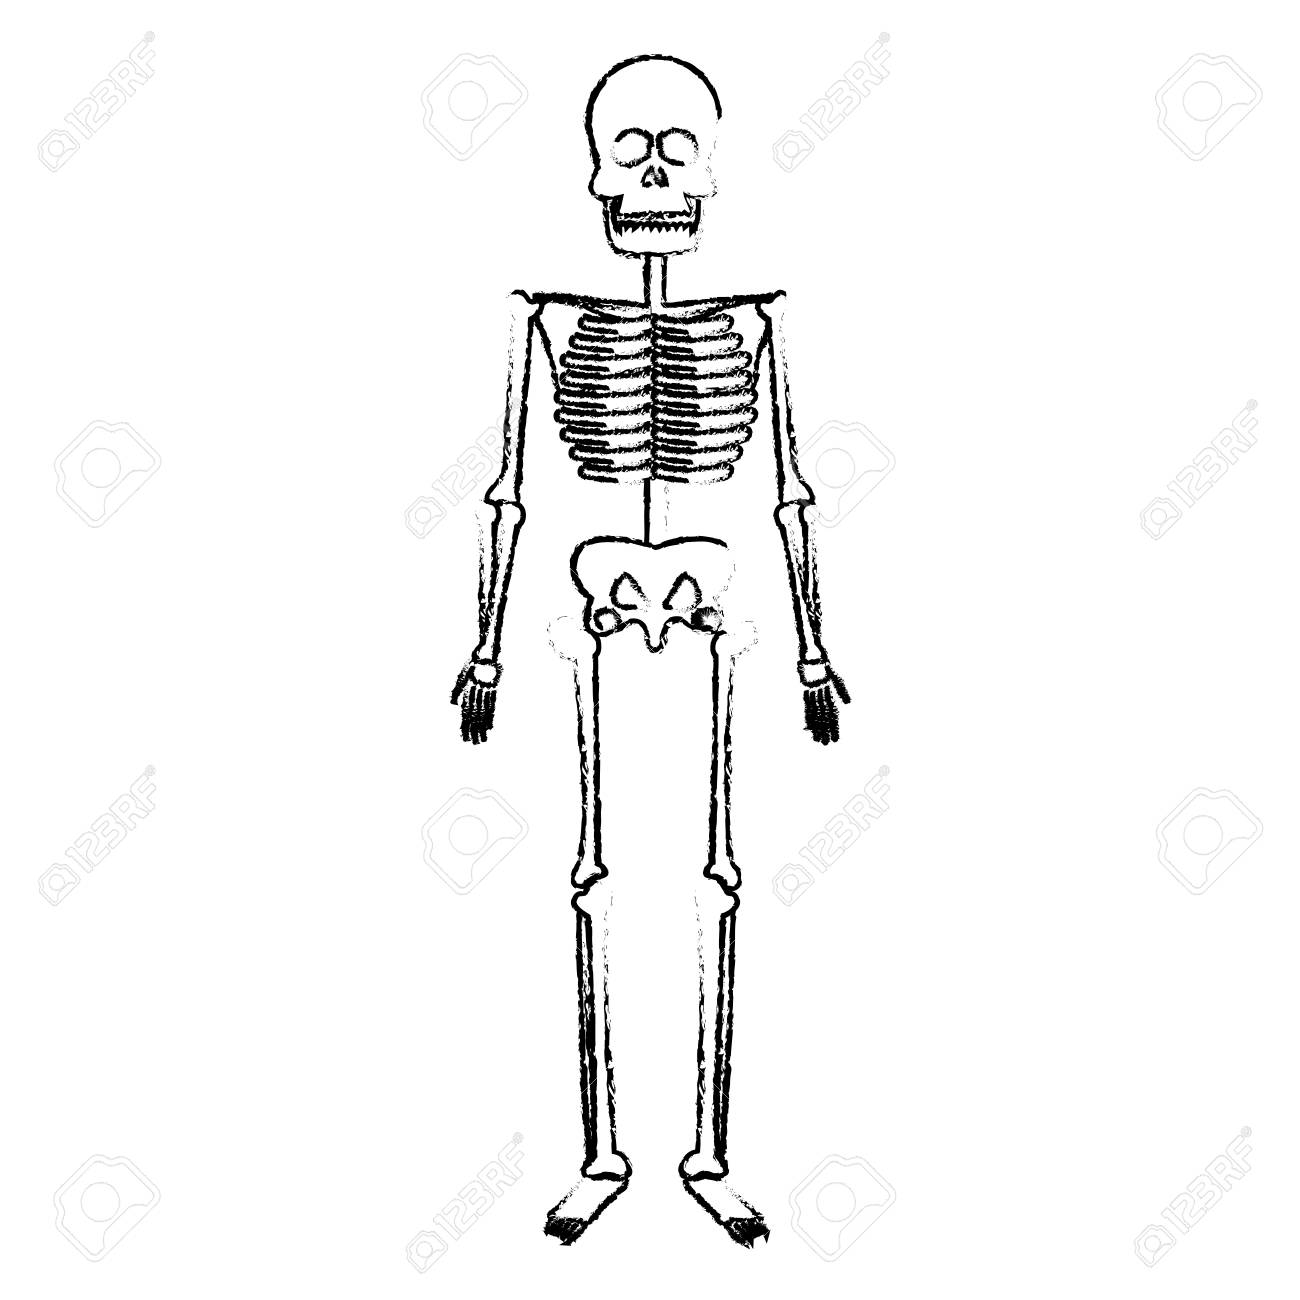 Skeleton human body bones medical vector illustration royalty free skeleton human body bones medical vector illustration stock vector 77624737 ccuart Image collections